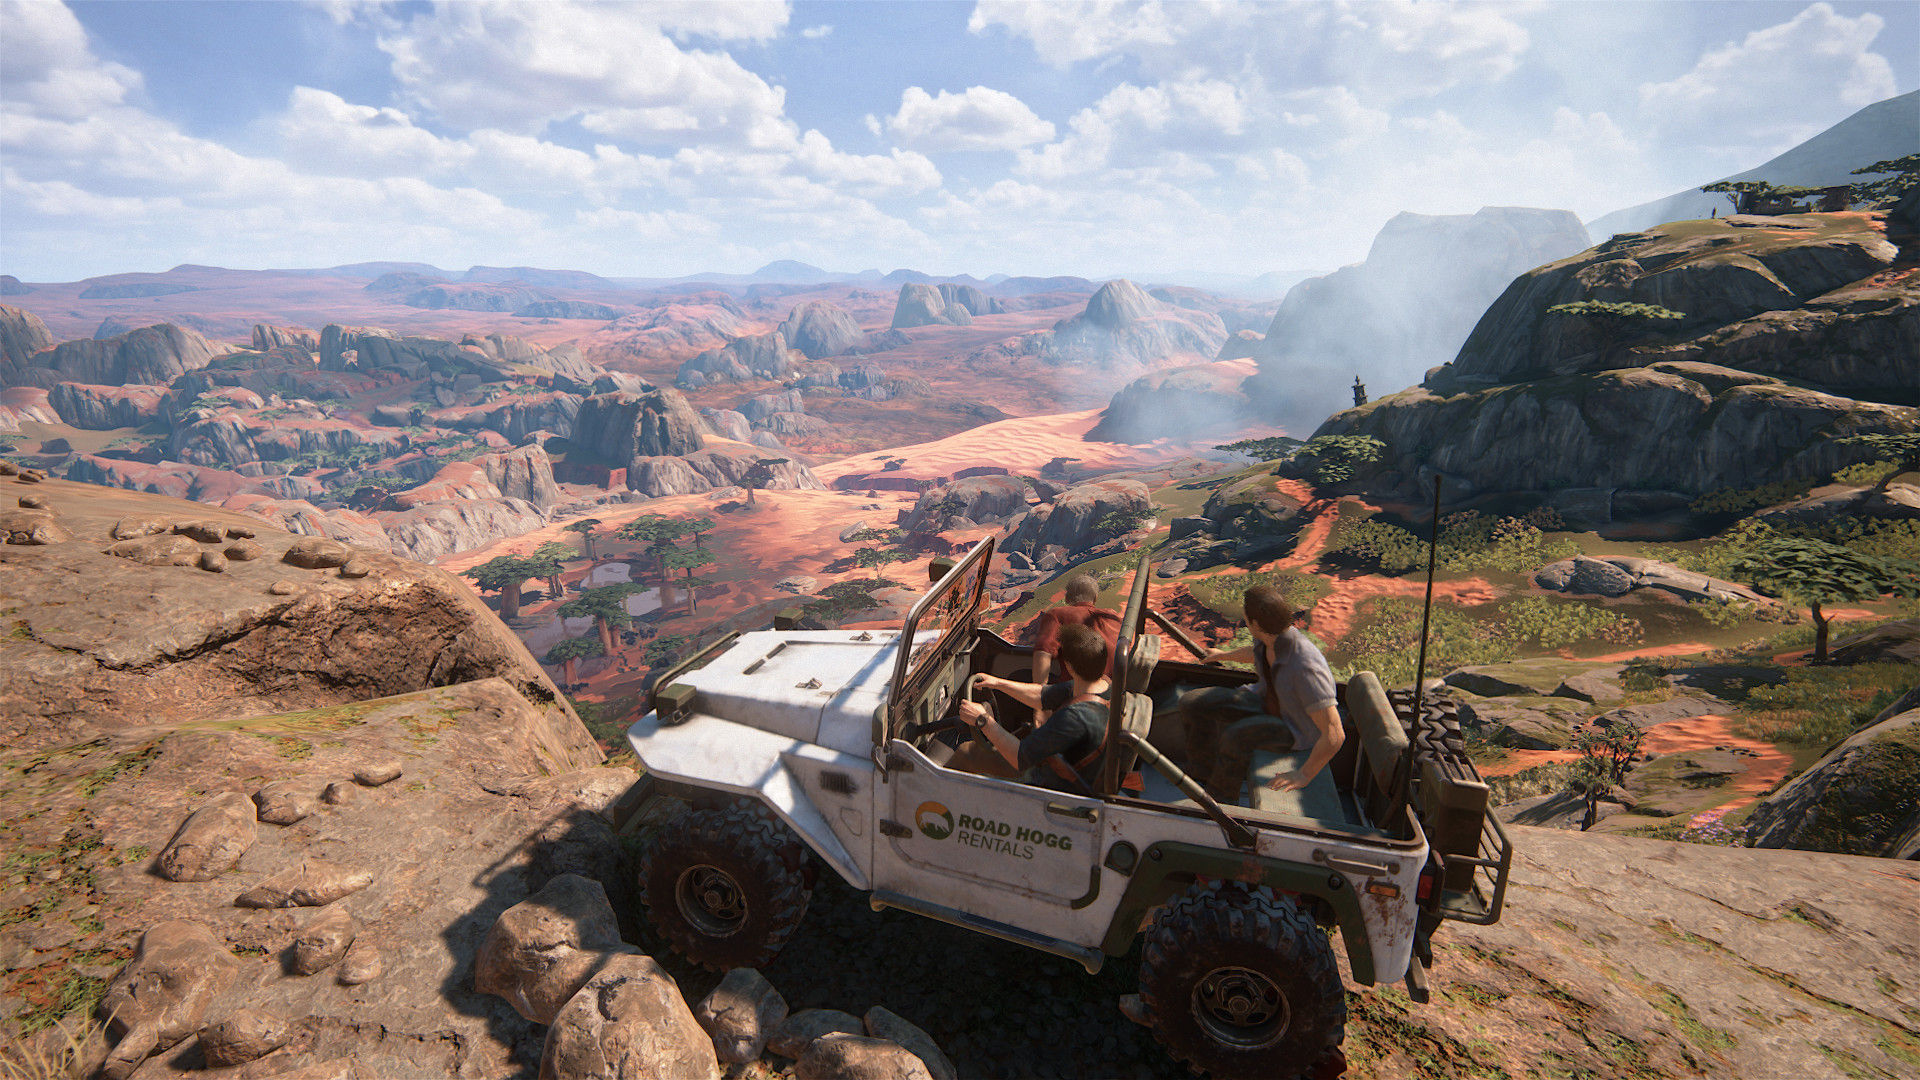 General Uncharted 4: A Thief's End uncharted PlayStation 4